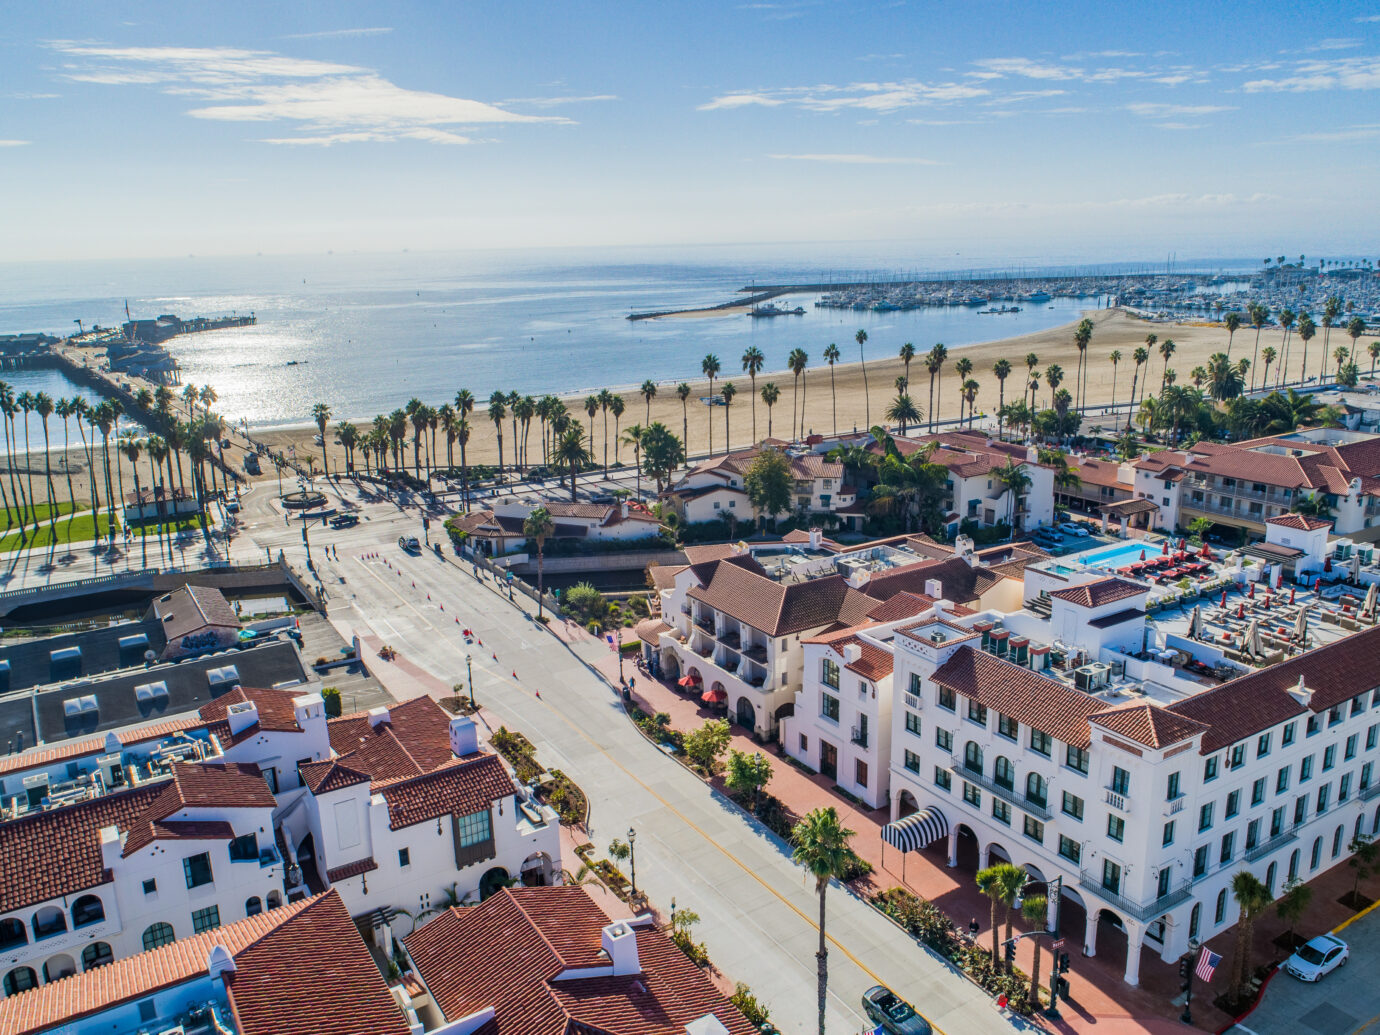 Aerial view of Hotel Californian, Santa Barbara, CA